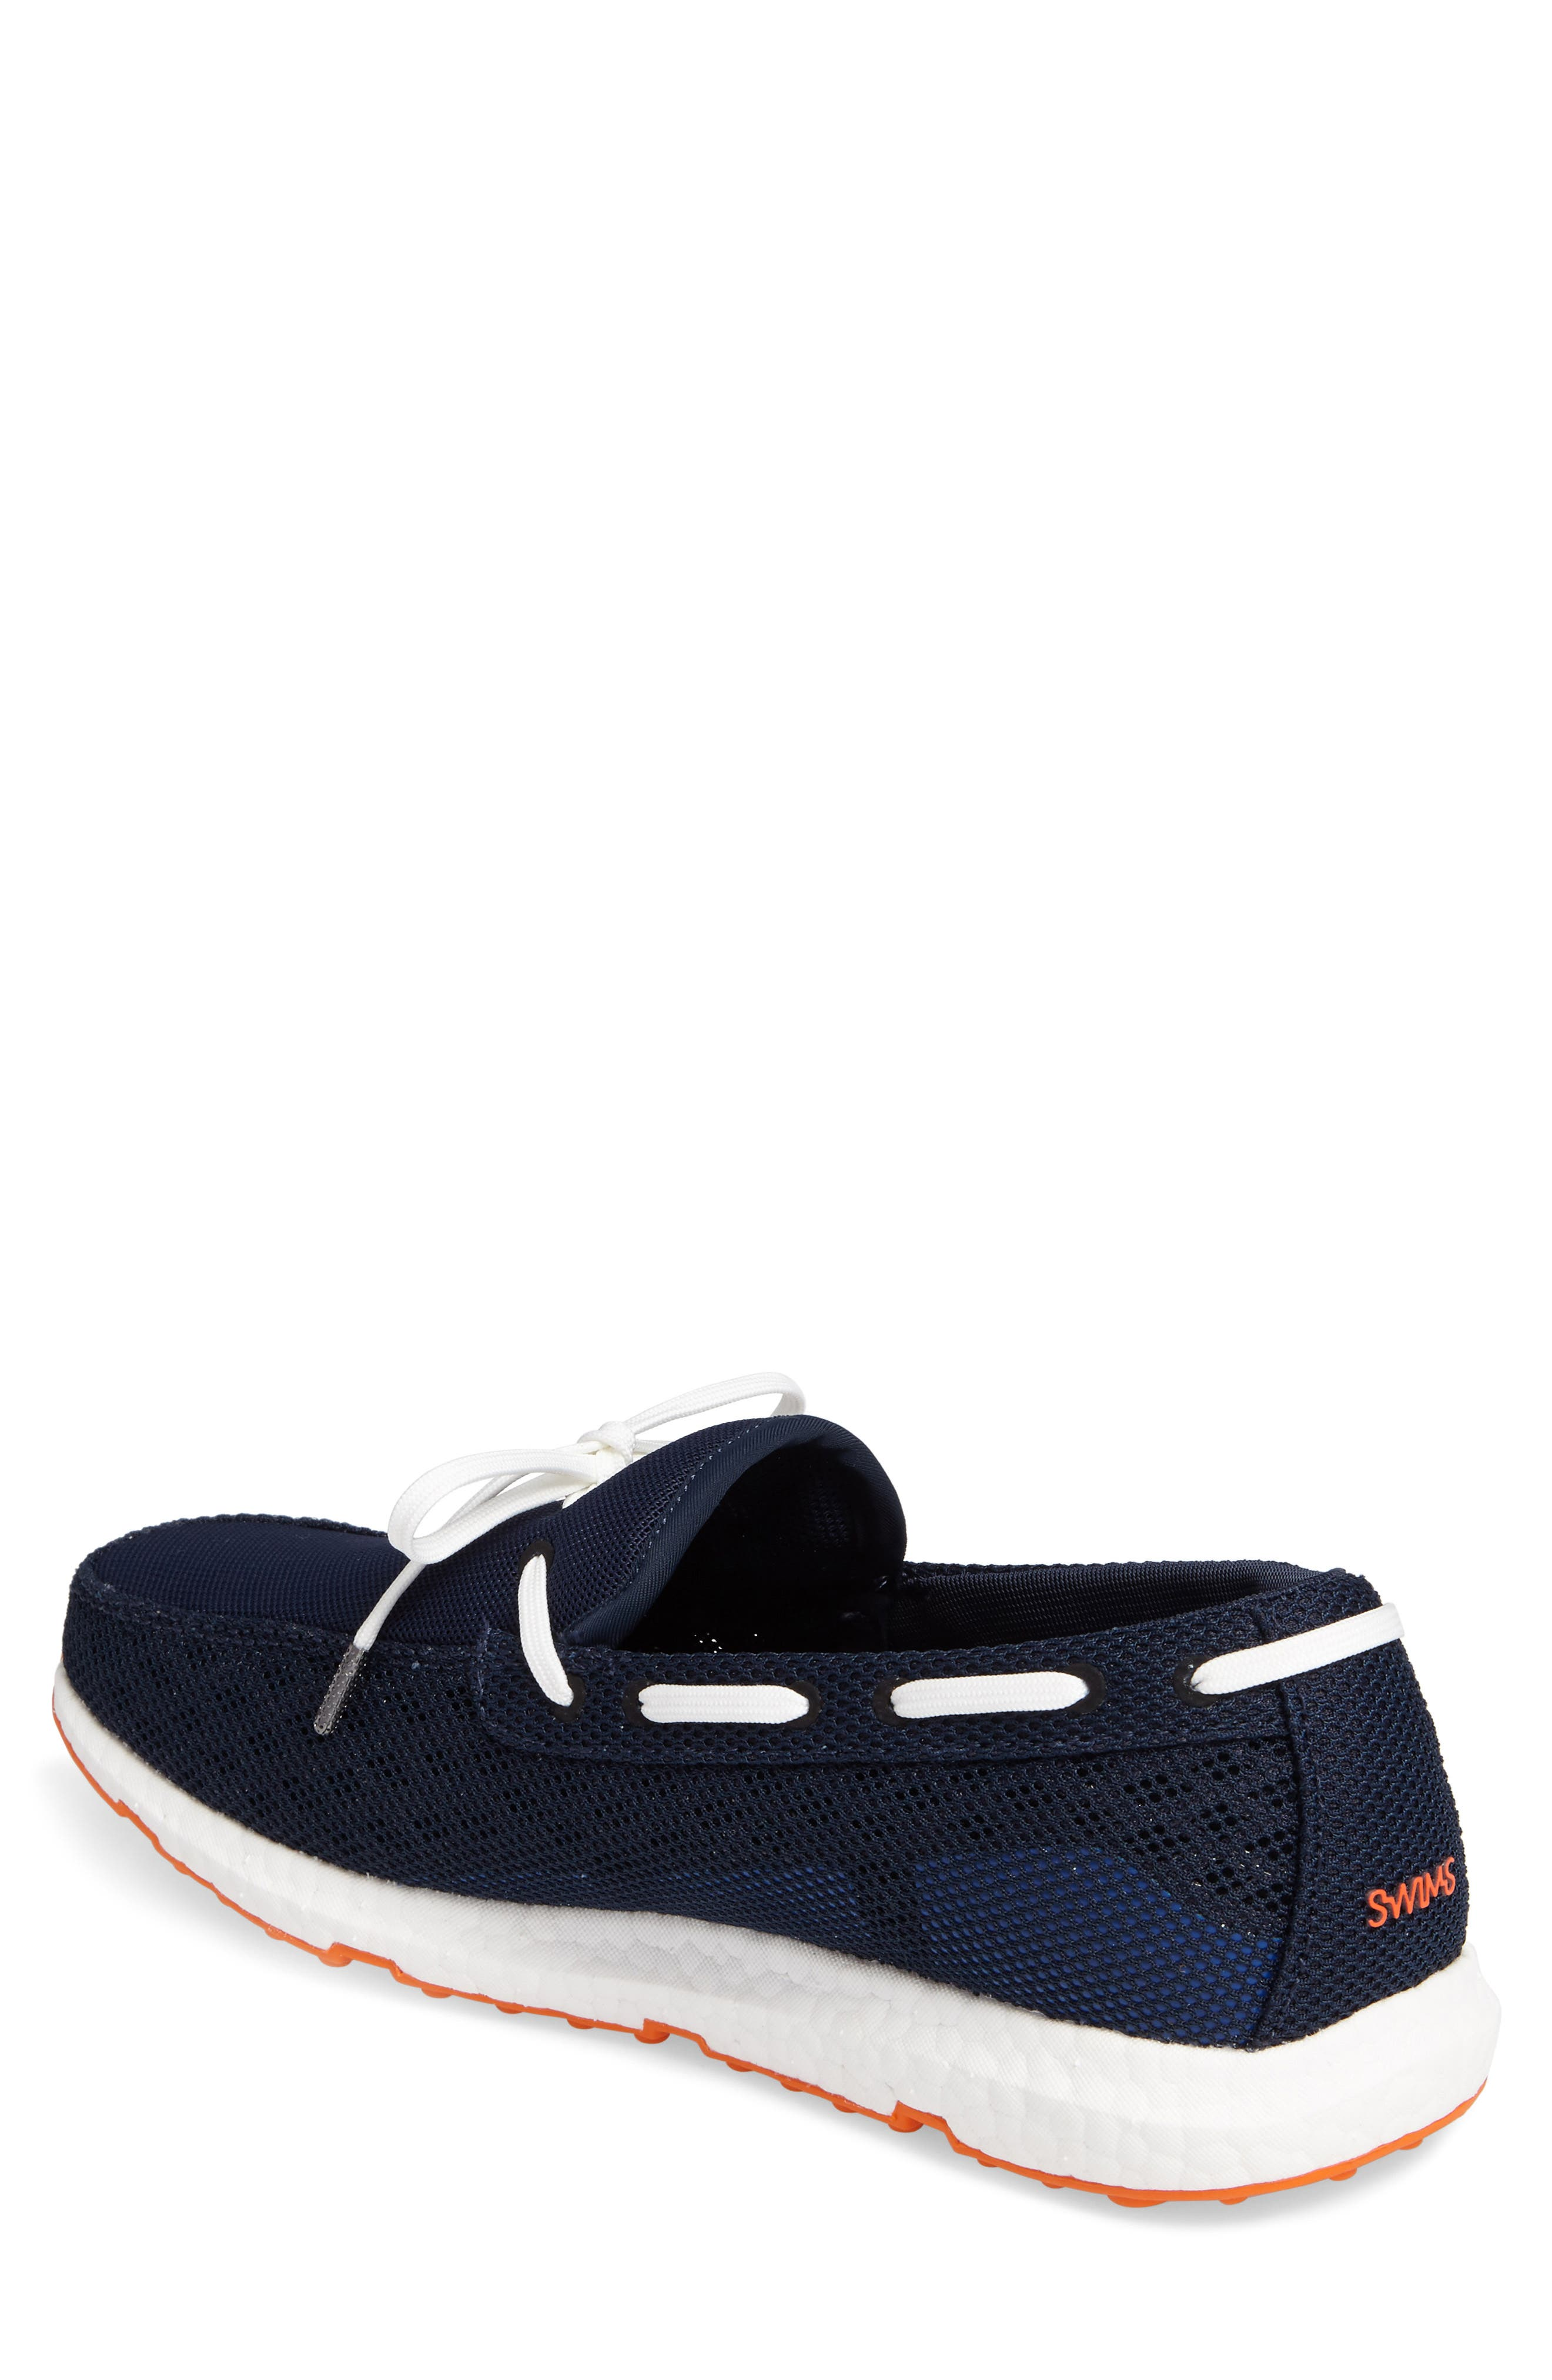 Breeze Loafer,                             Alternate thumbnail 2, color,                             Navy/ Orange Fabric